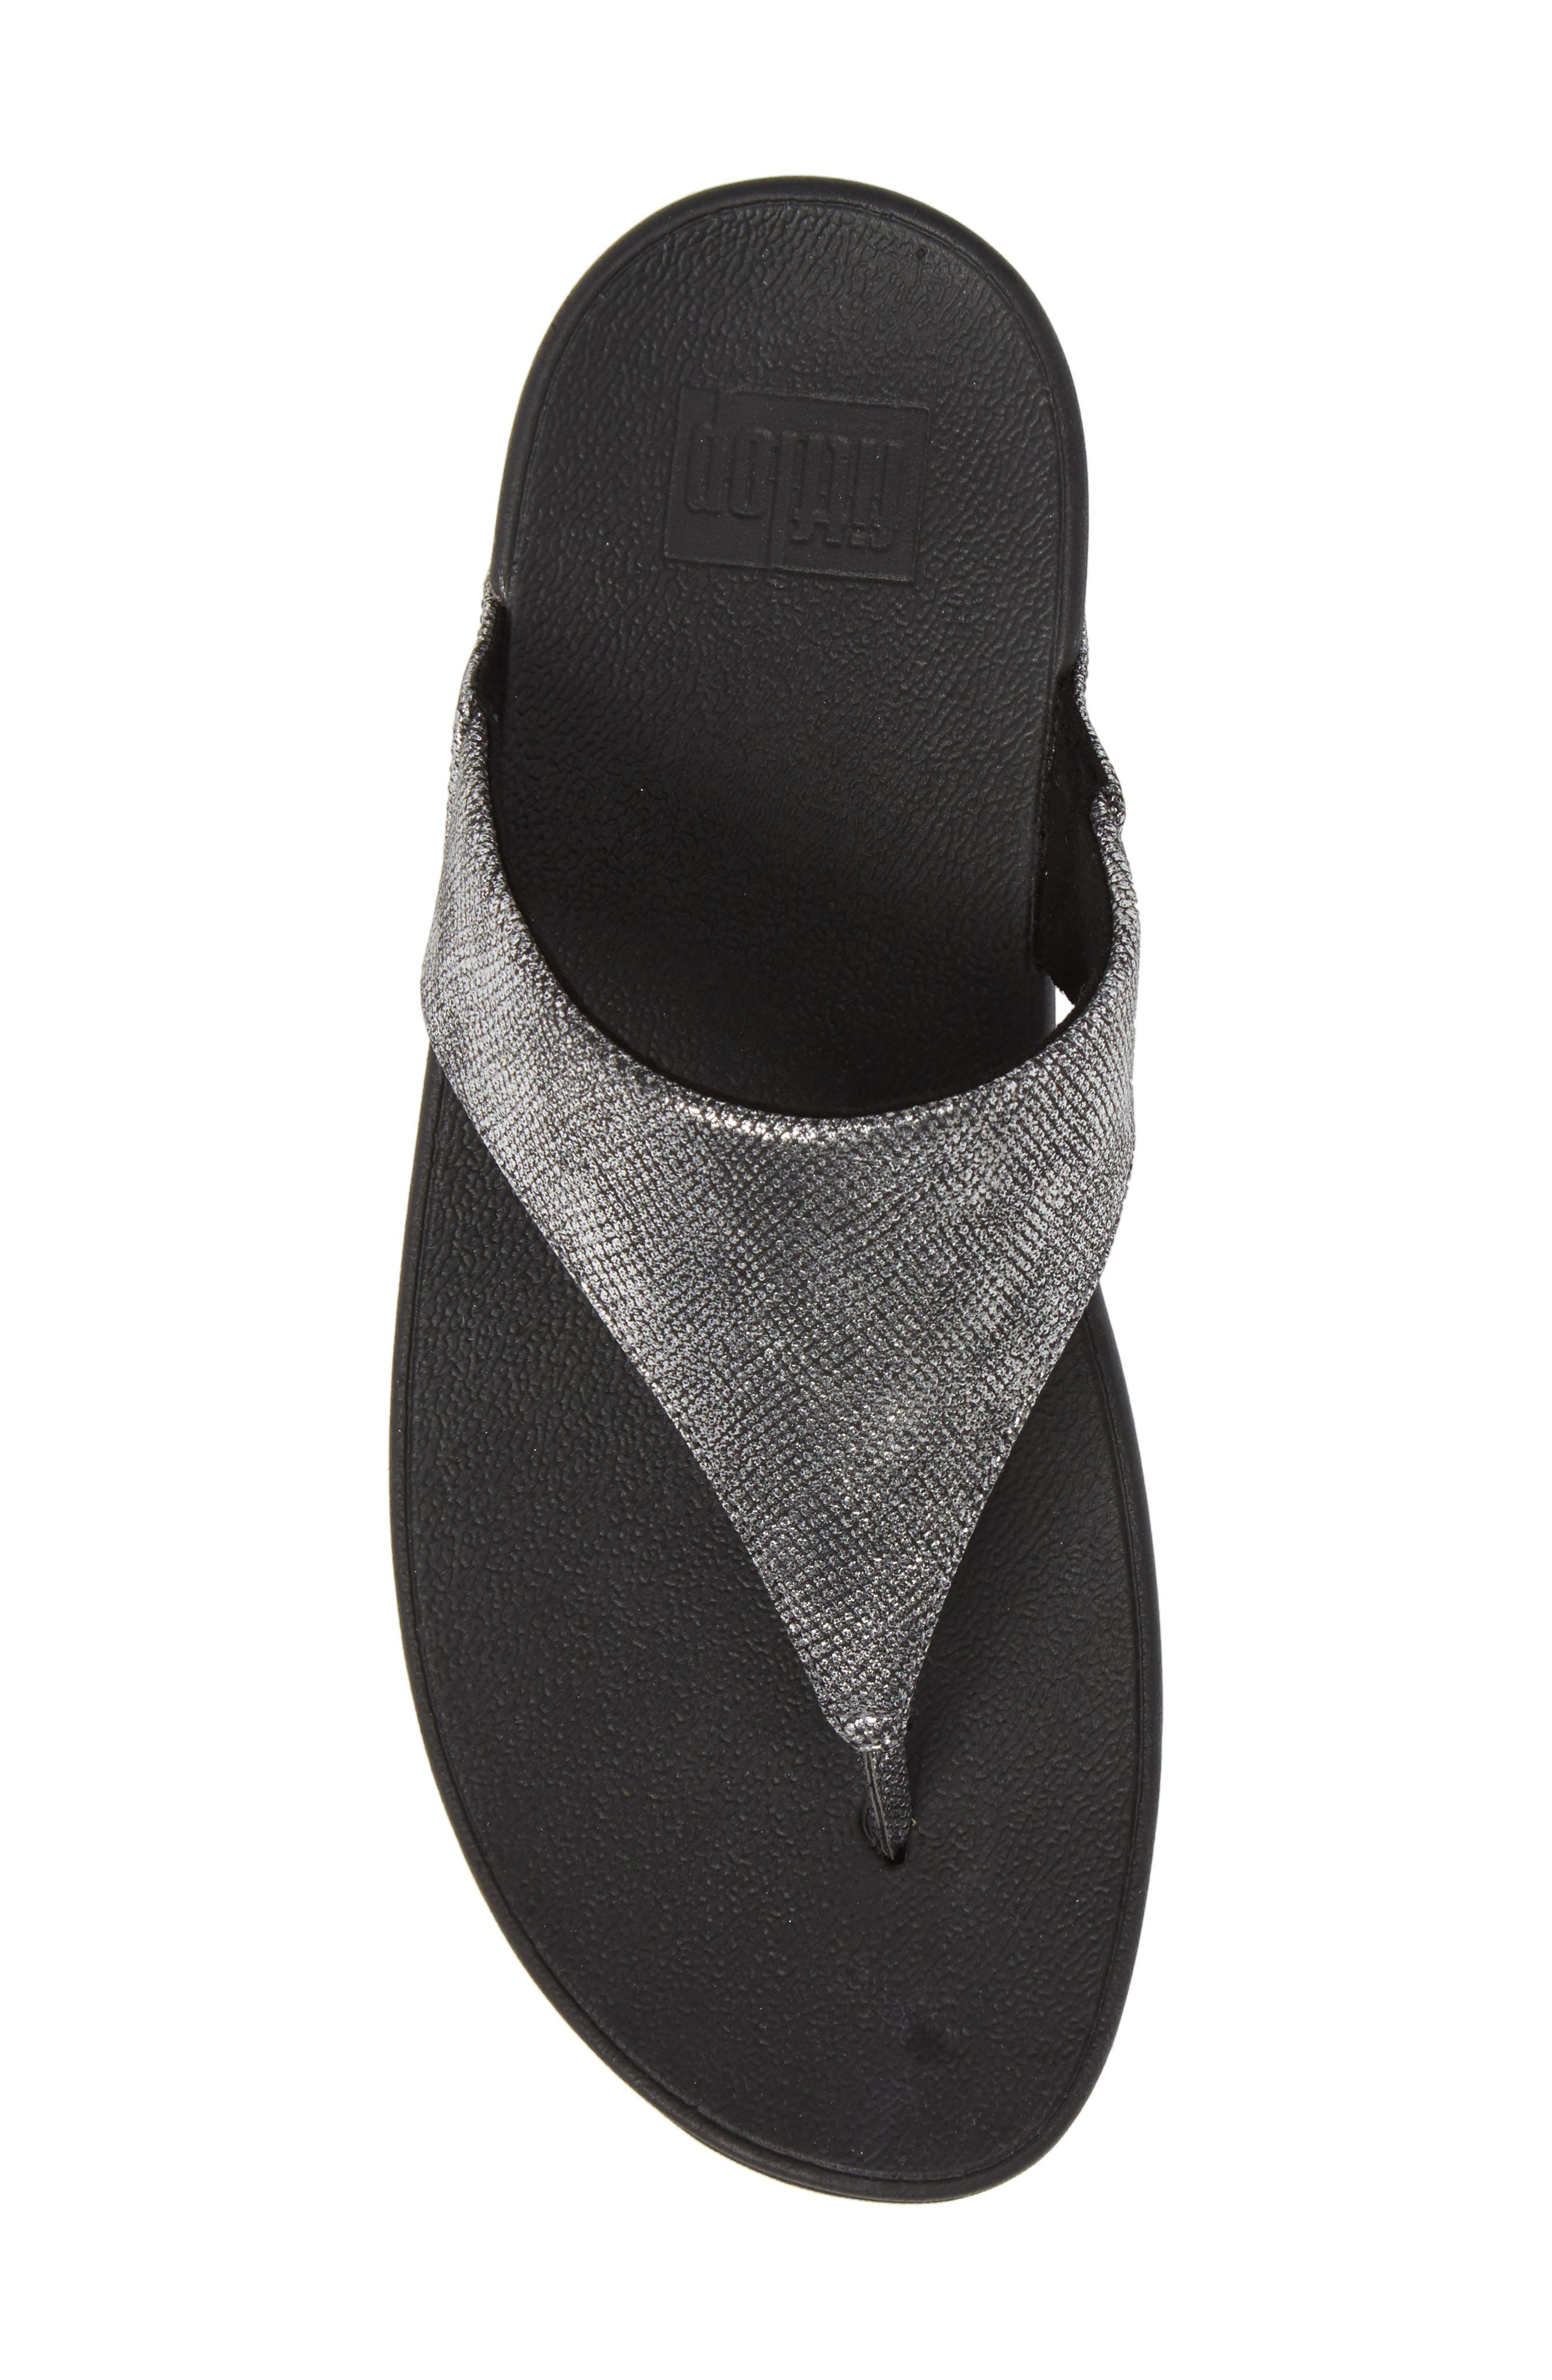 FITFLOP,                             Lulu Thong Sandal,                             Alternate thumbnail 5, color,                             004